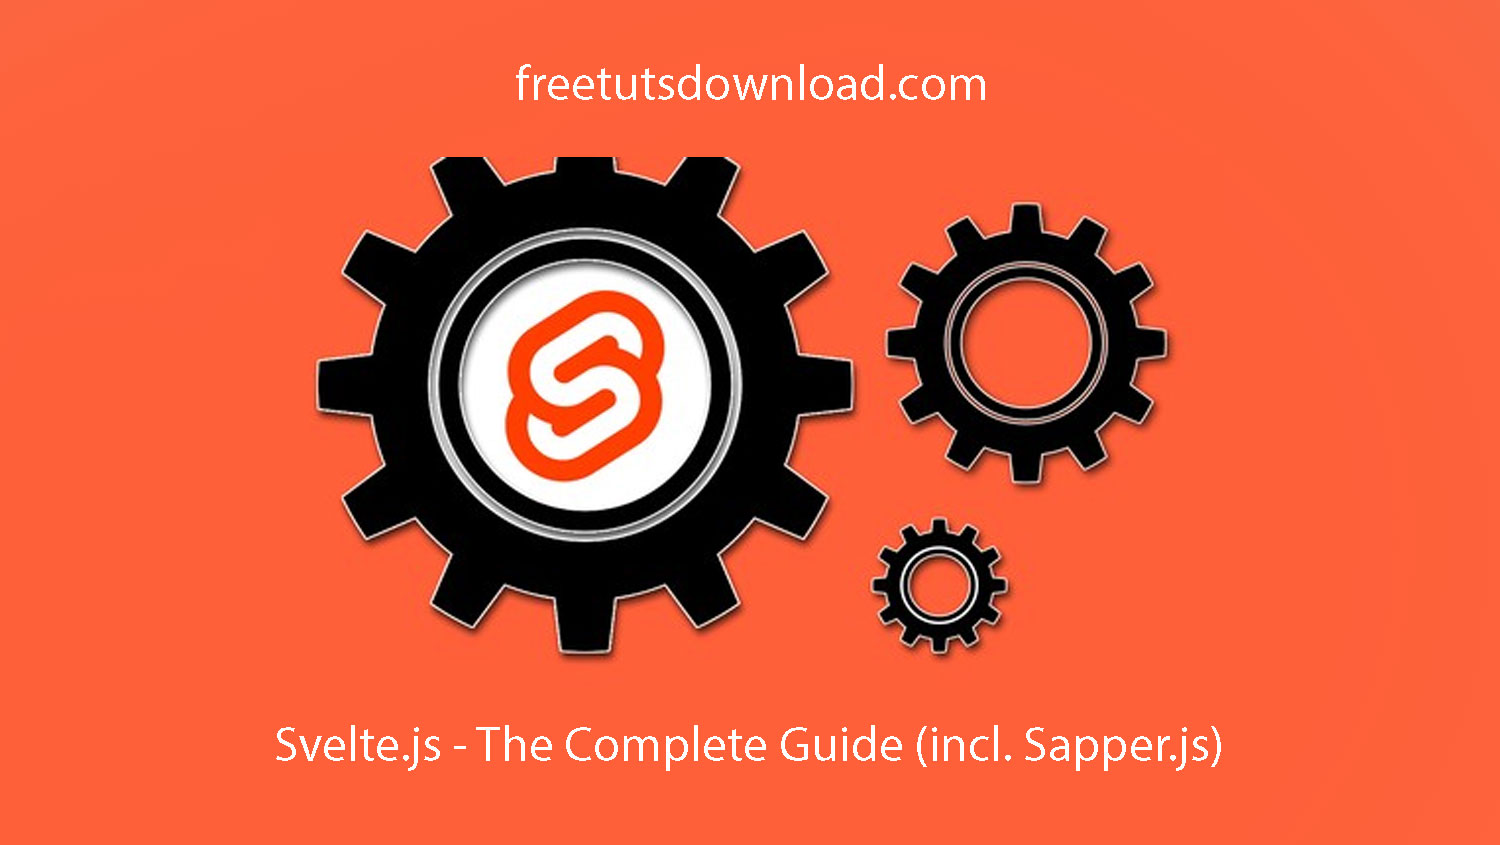 Svelte.js - The Complete Guide (incl. Sapper.js)